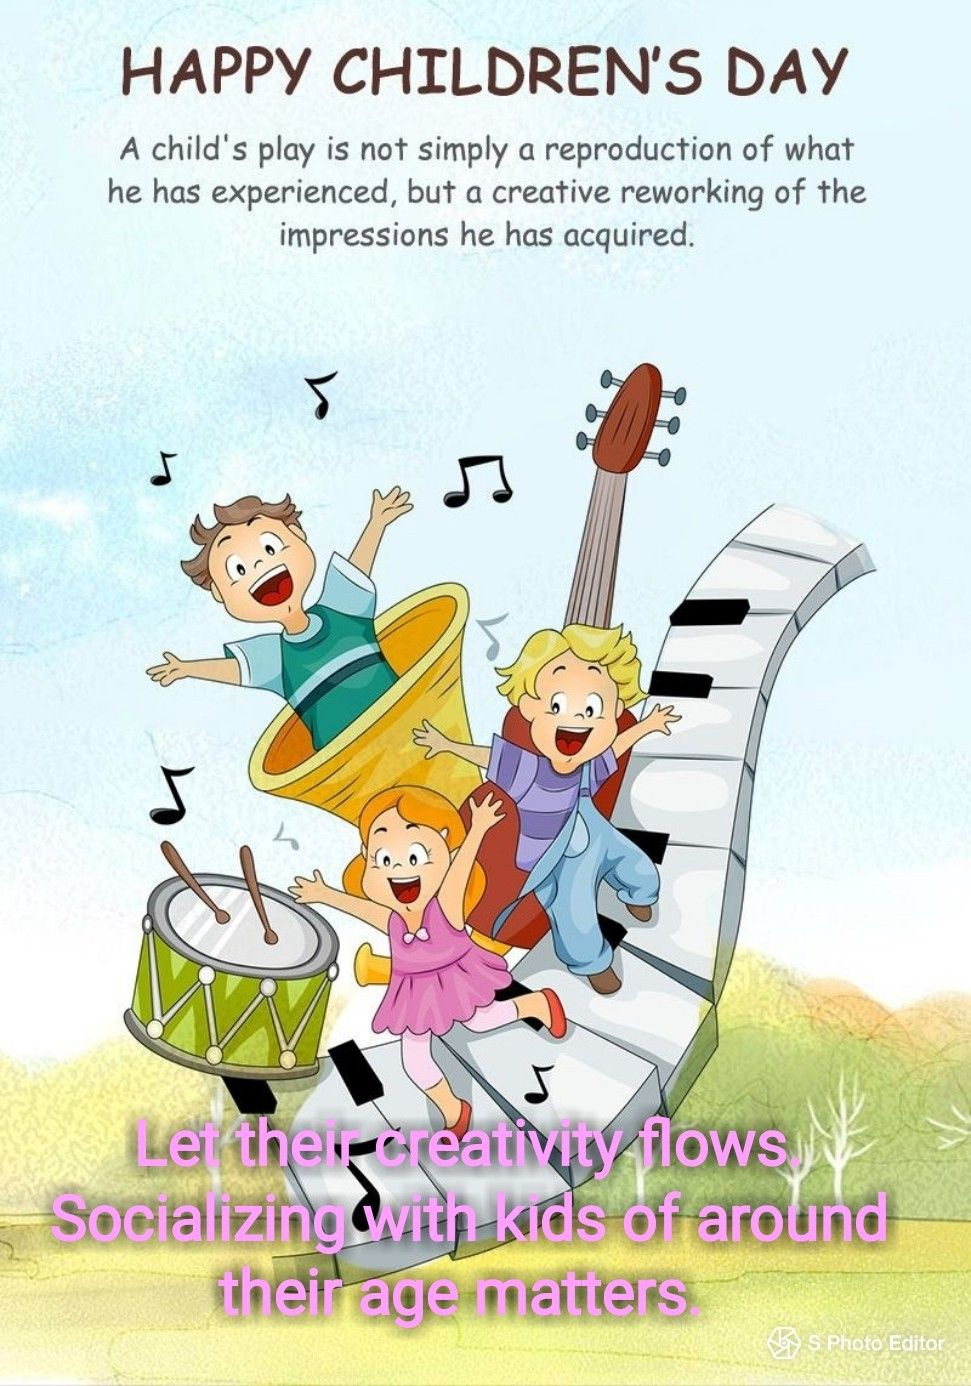 Pin by Yoon Soh on children related | Happy children's day, Happy kids, Childrens  day quotes